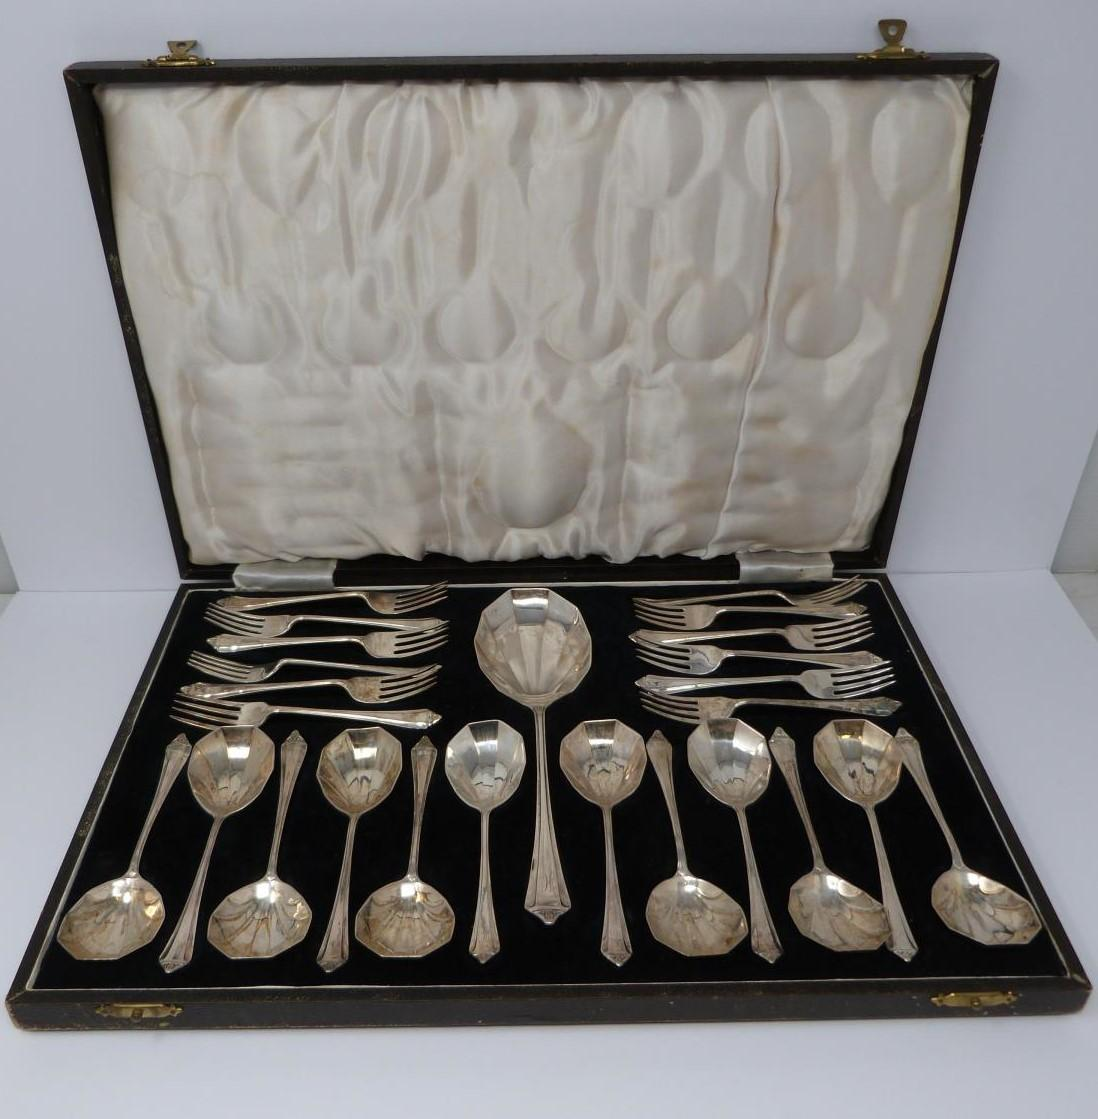 A cased set of Art Deco shell design silver forks and spoons, by P. Ashberry and Sons, 1929 and 1932